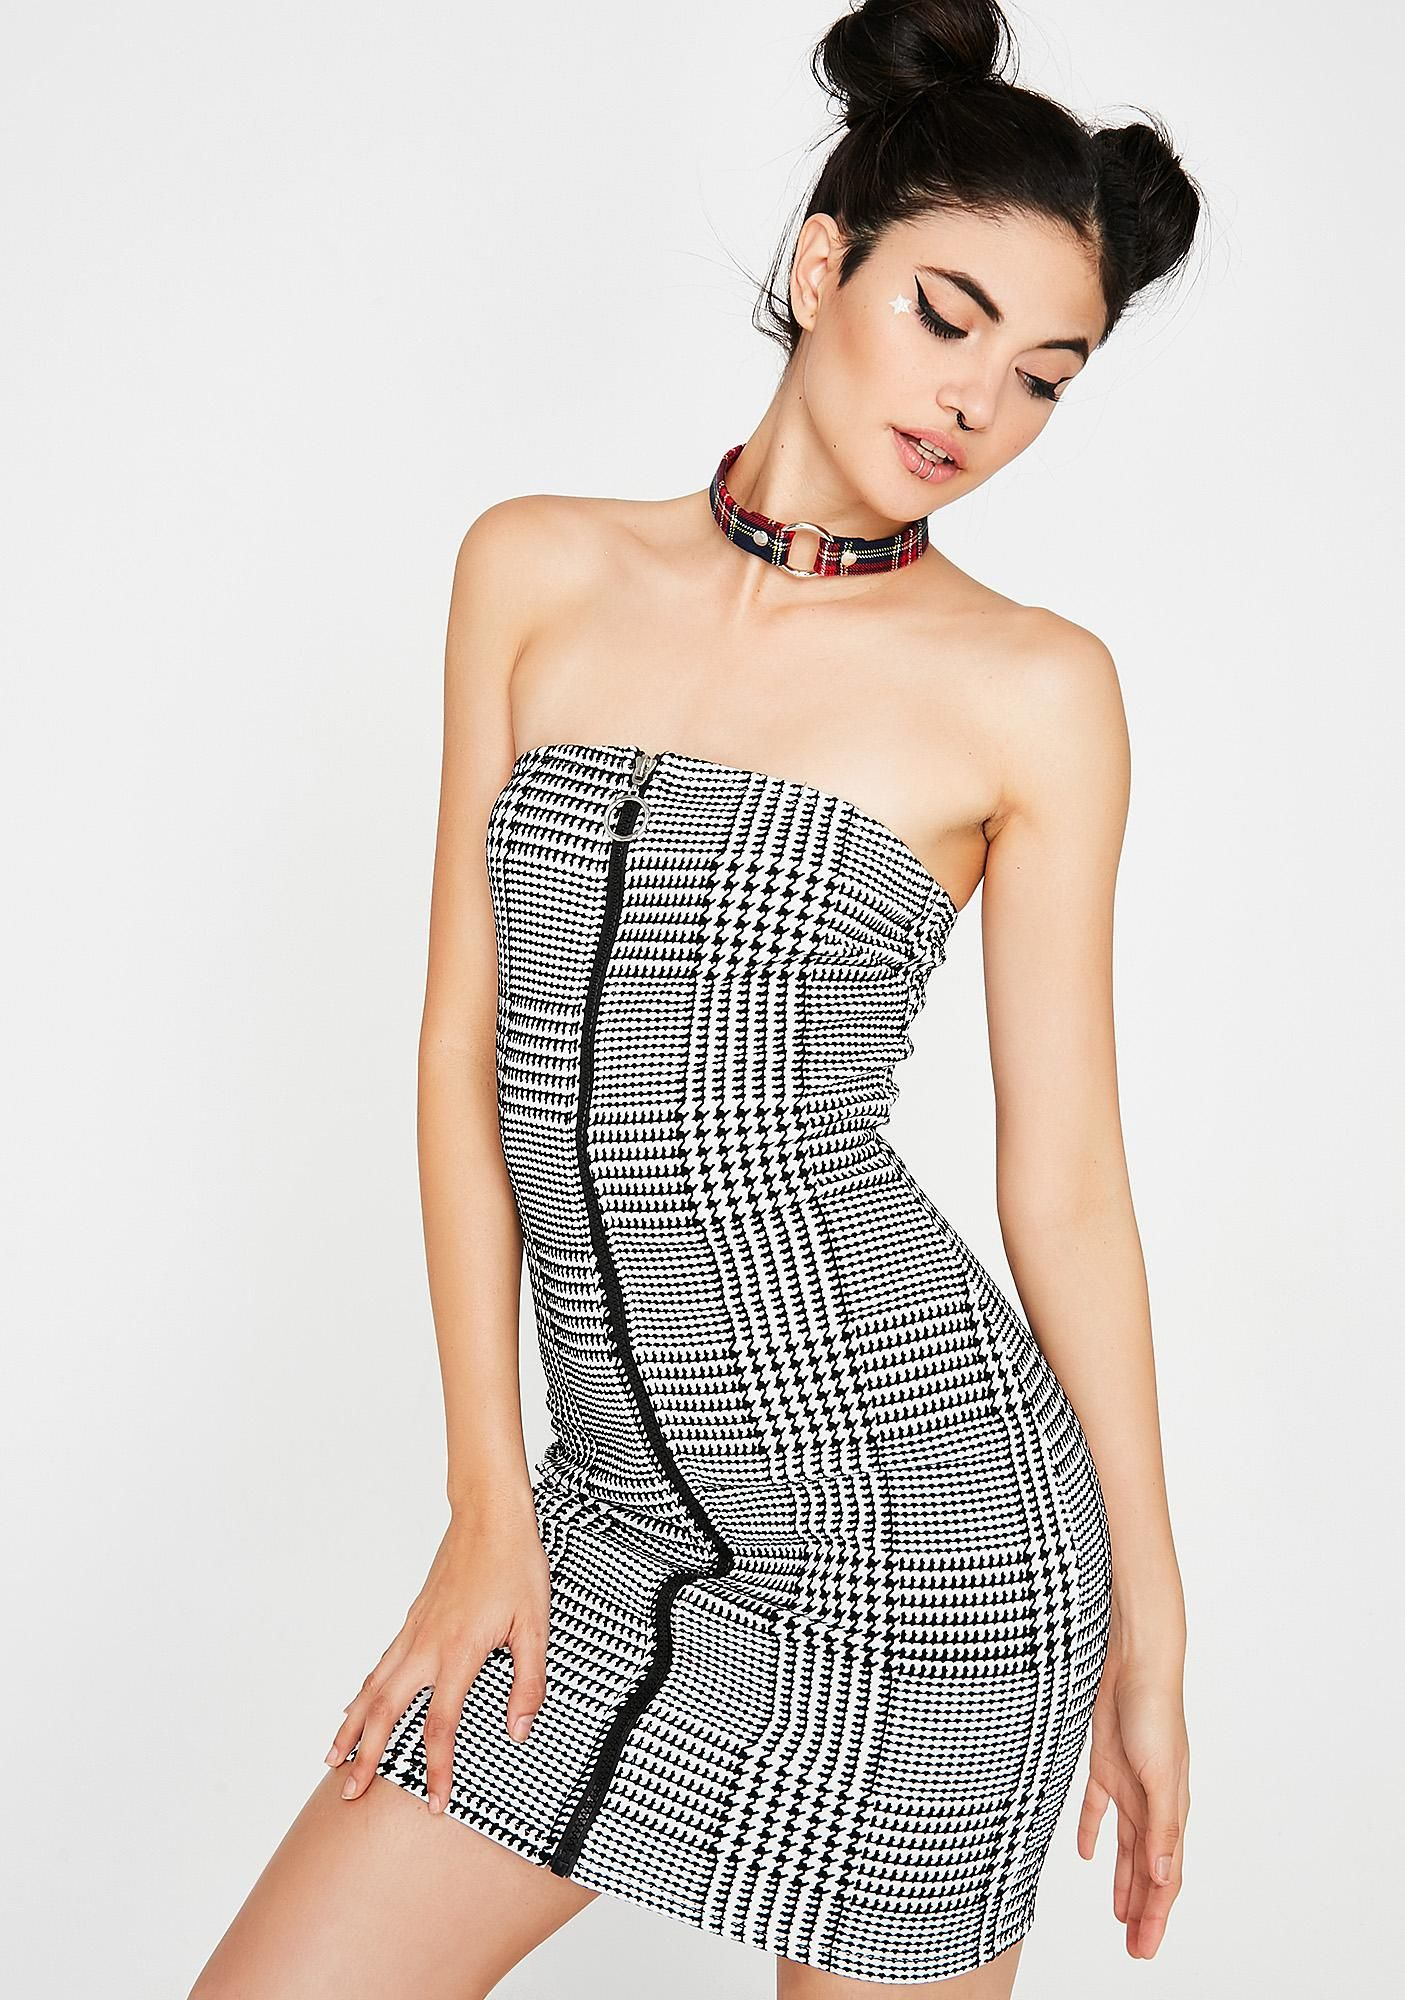 7dcee42839 Gone Mod Mini Dress they ve gone mad over you babe! This dope strapless  dress has a retro houndstooth pattern and a zip-up front closure.